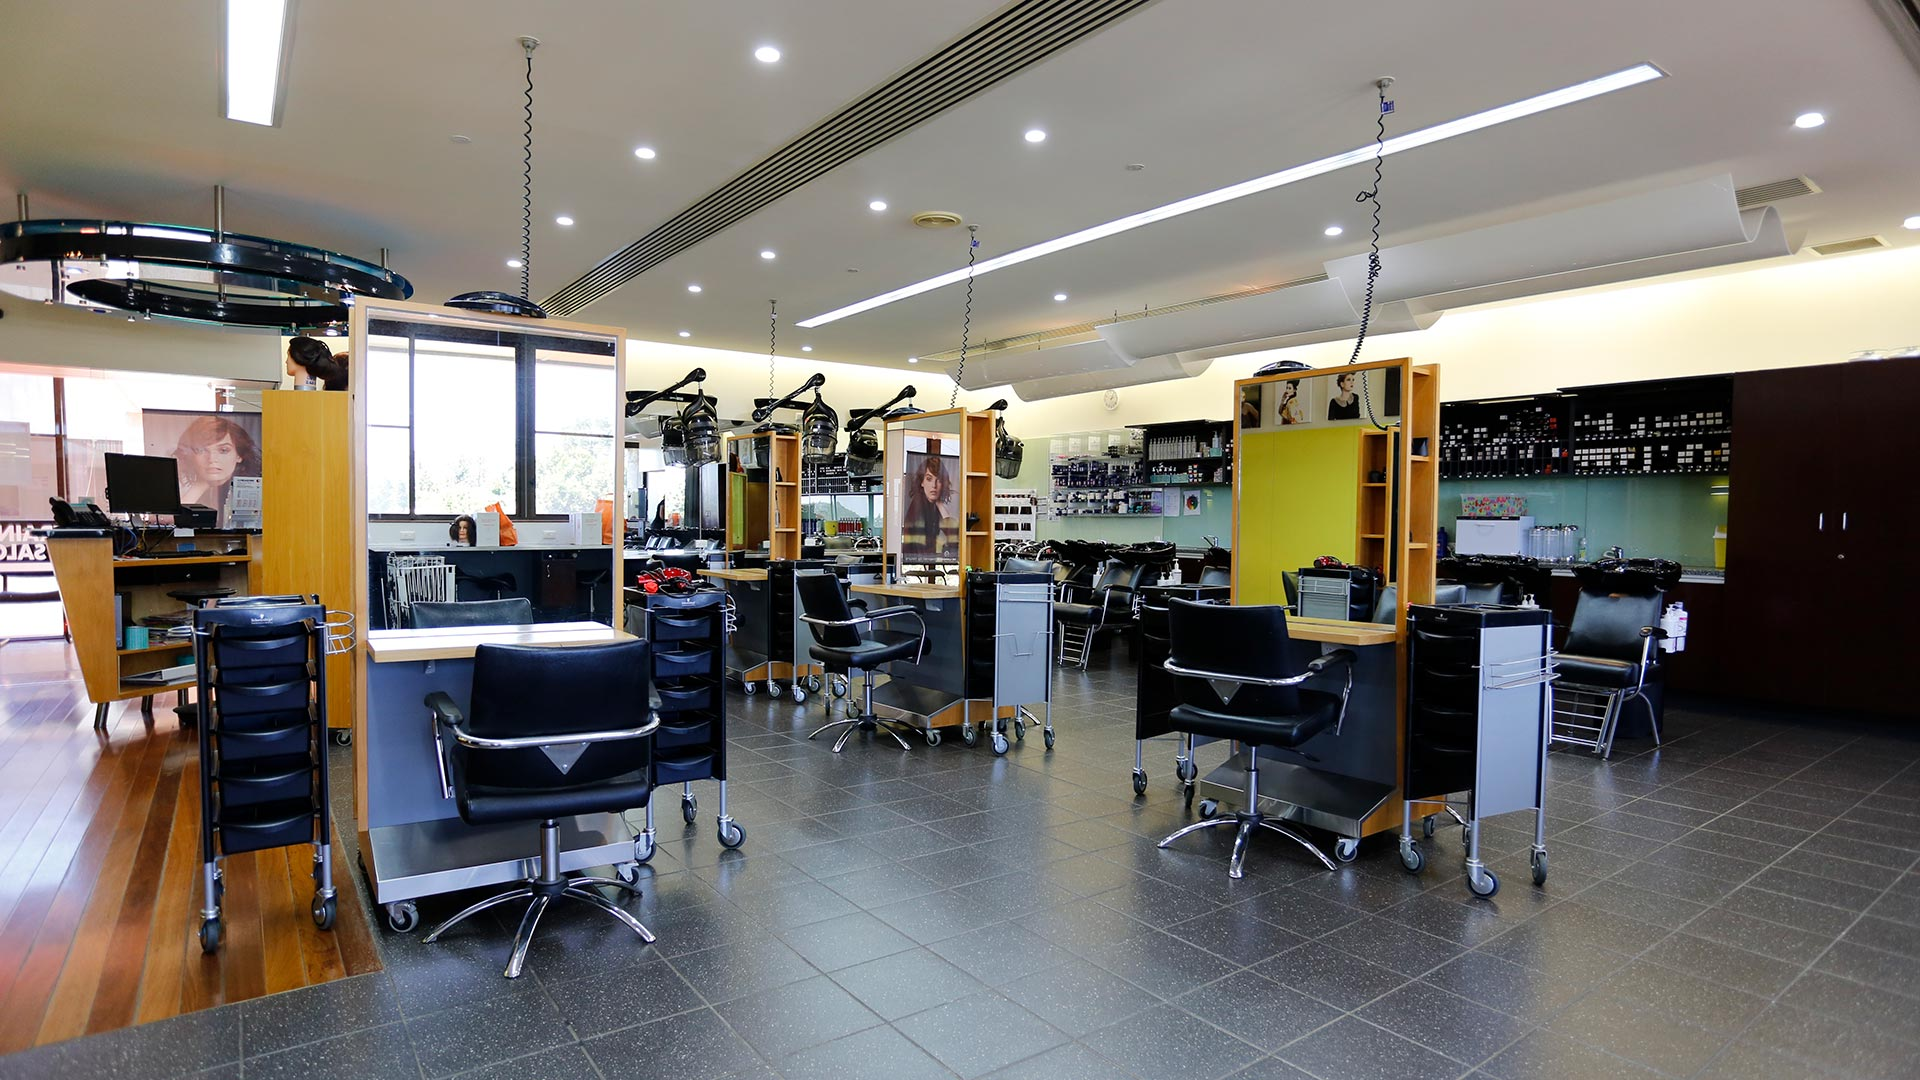 toowoomba-facilities-beauty-and-hairdressing-02.jpg